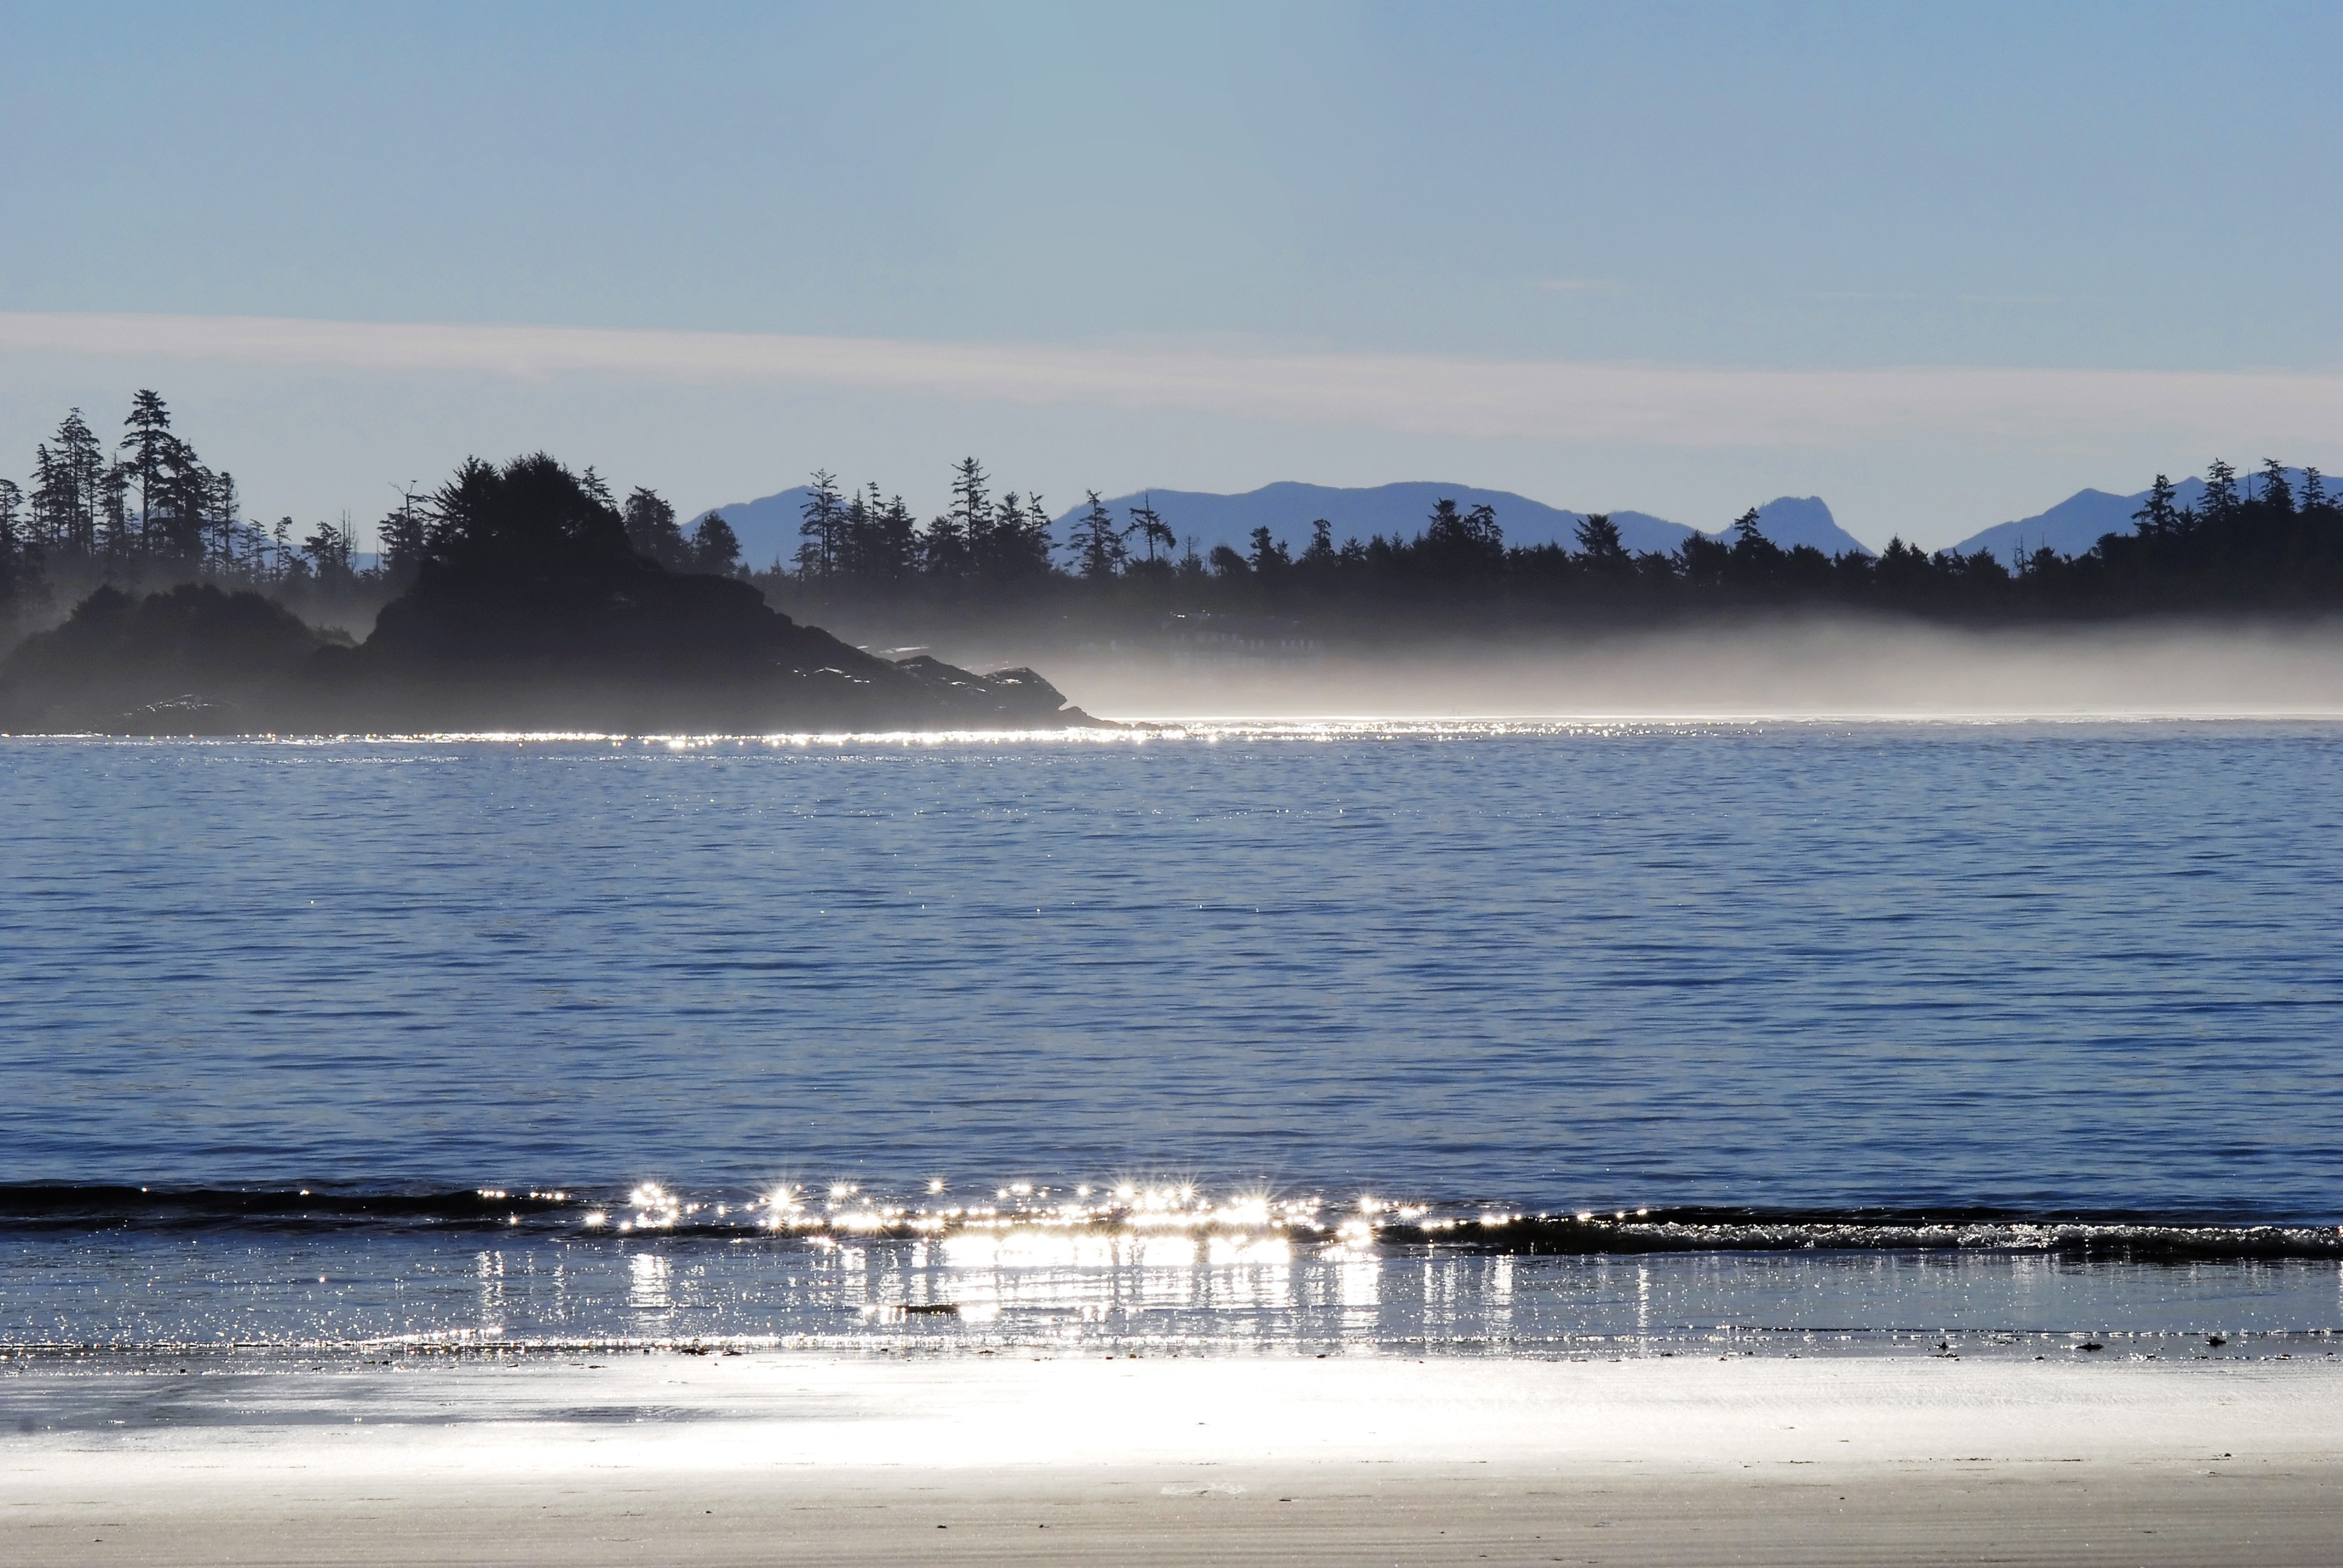 how to go to sunshine coast from vancouver island